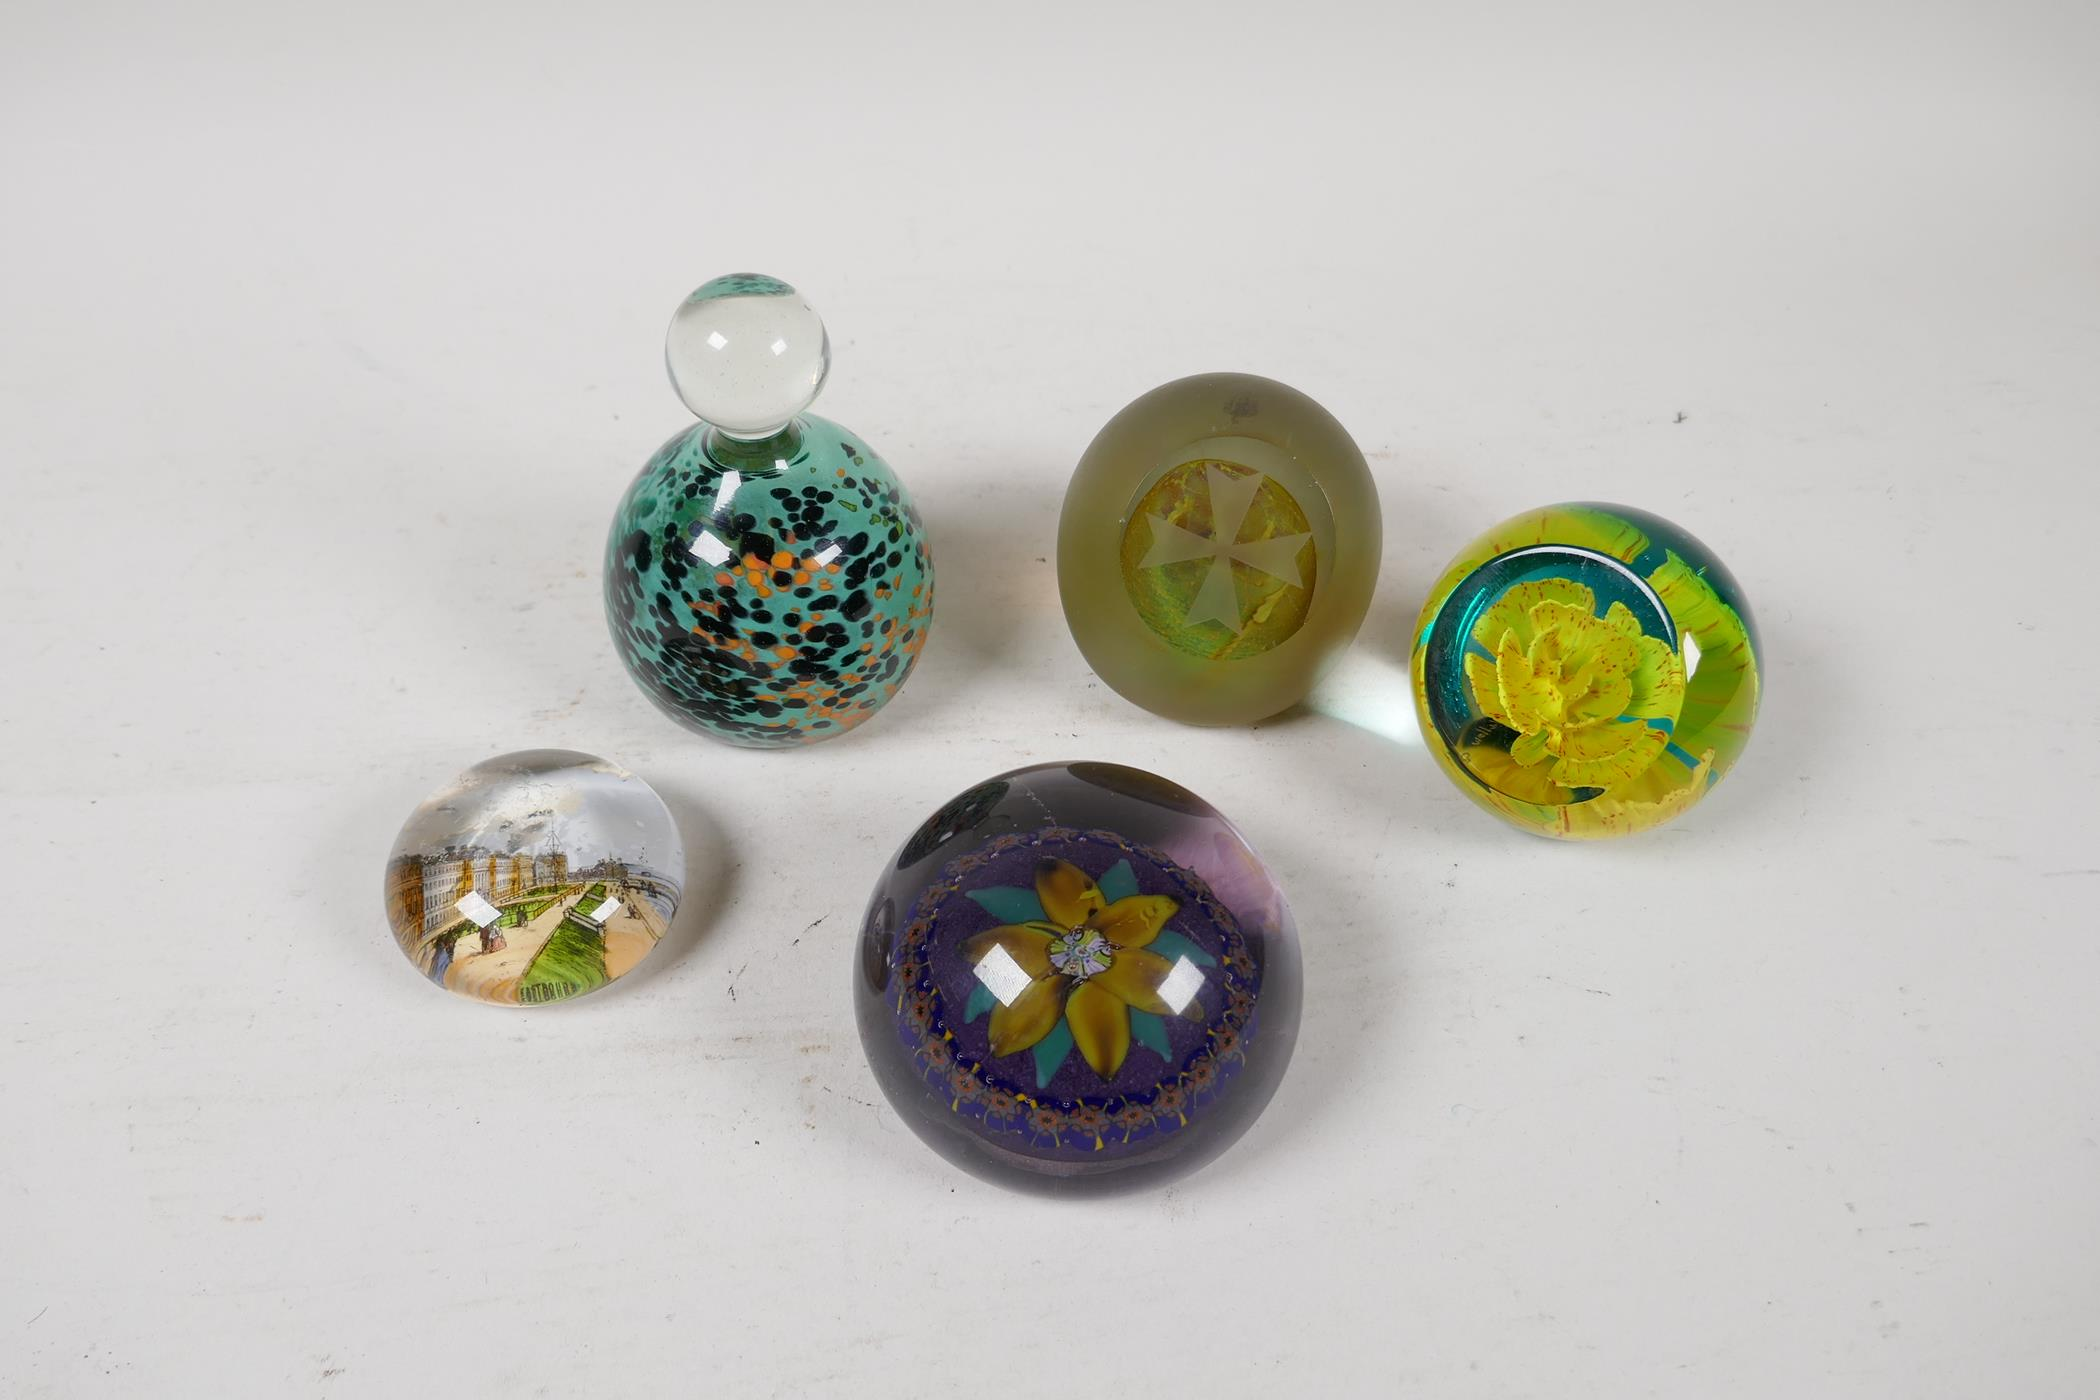 A 1930s Scottish floral glass paperweight by Salvador Ysart, a Caithness yellow carnation glass